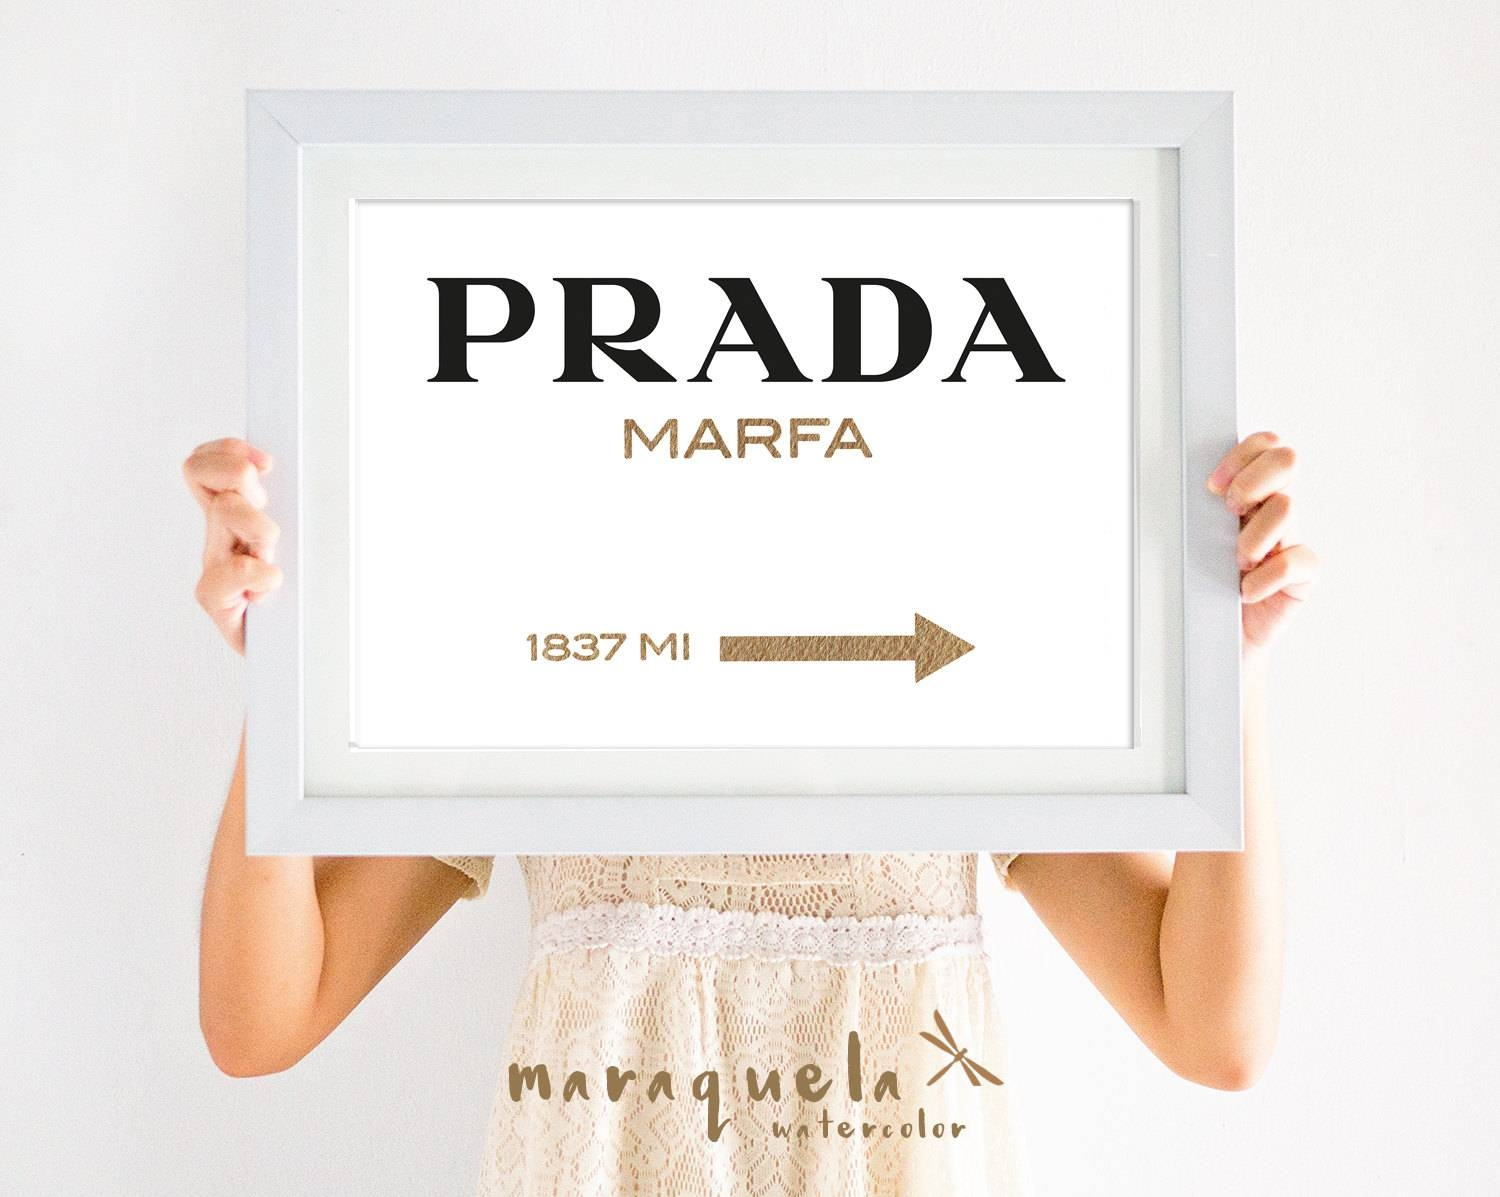 Original Prada Marfa Watercolor Golden Letters Inspired Wall Art Pertaining To Recent Prada Wall Art (View 9 of 25)